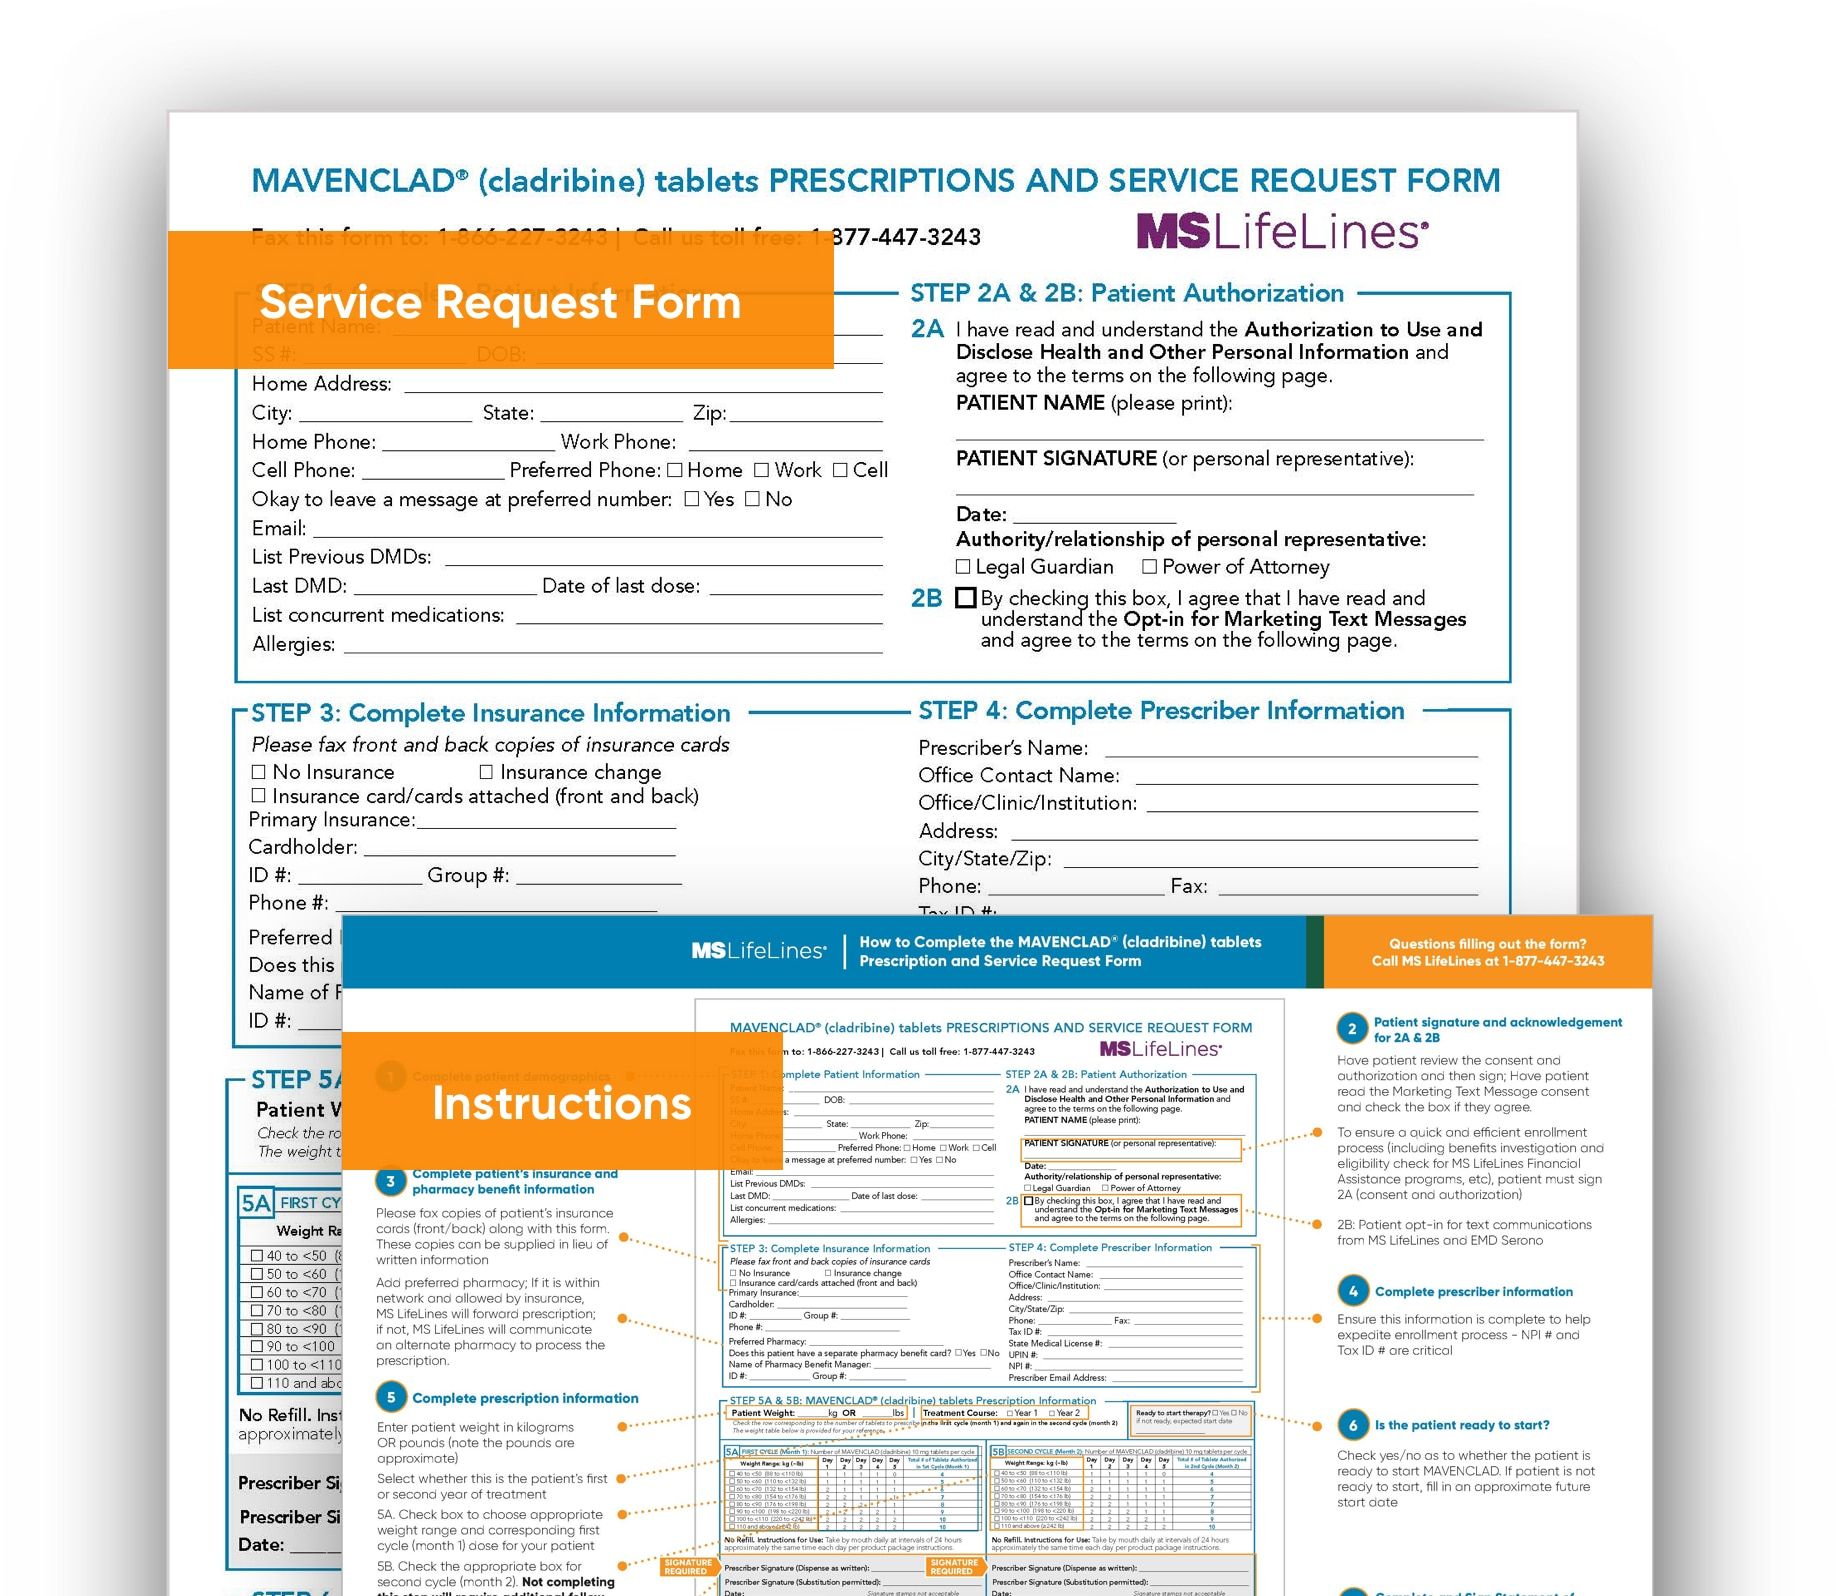 MAVENCLAD® service request form